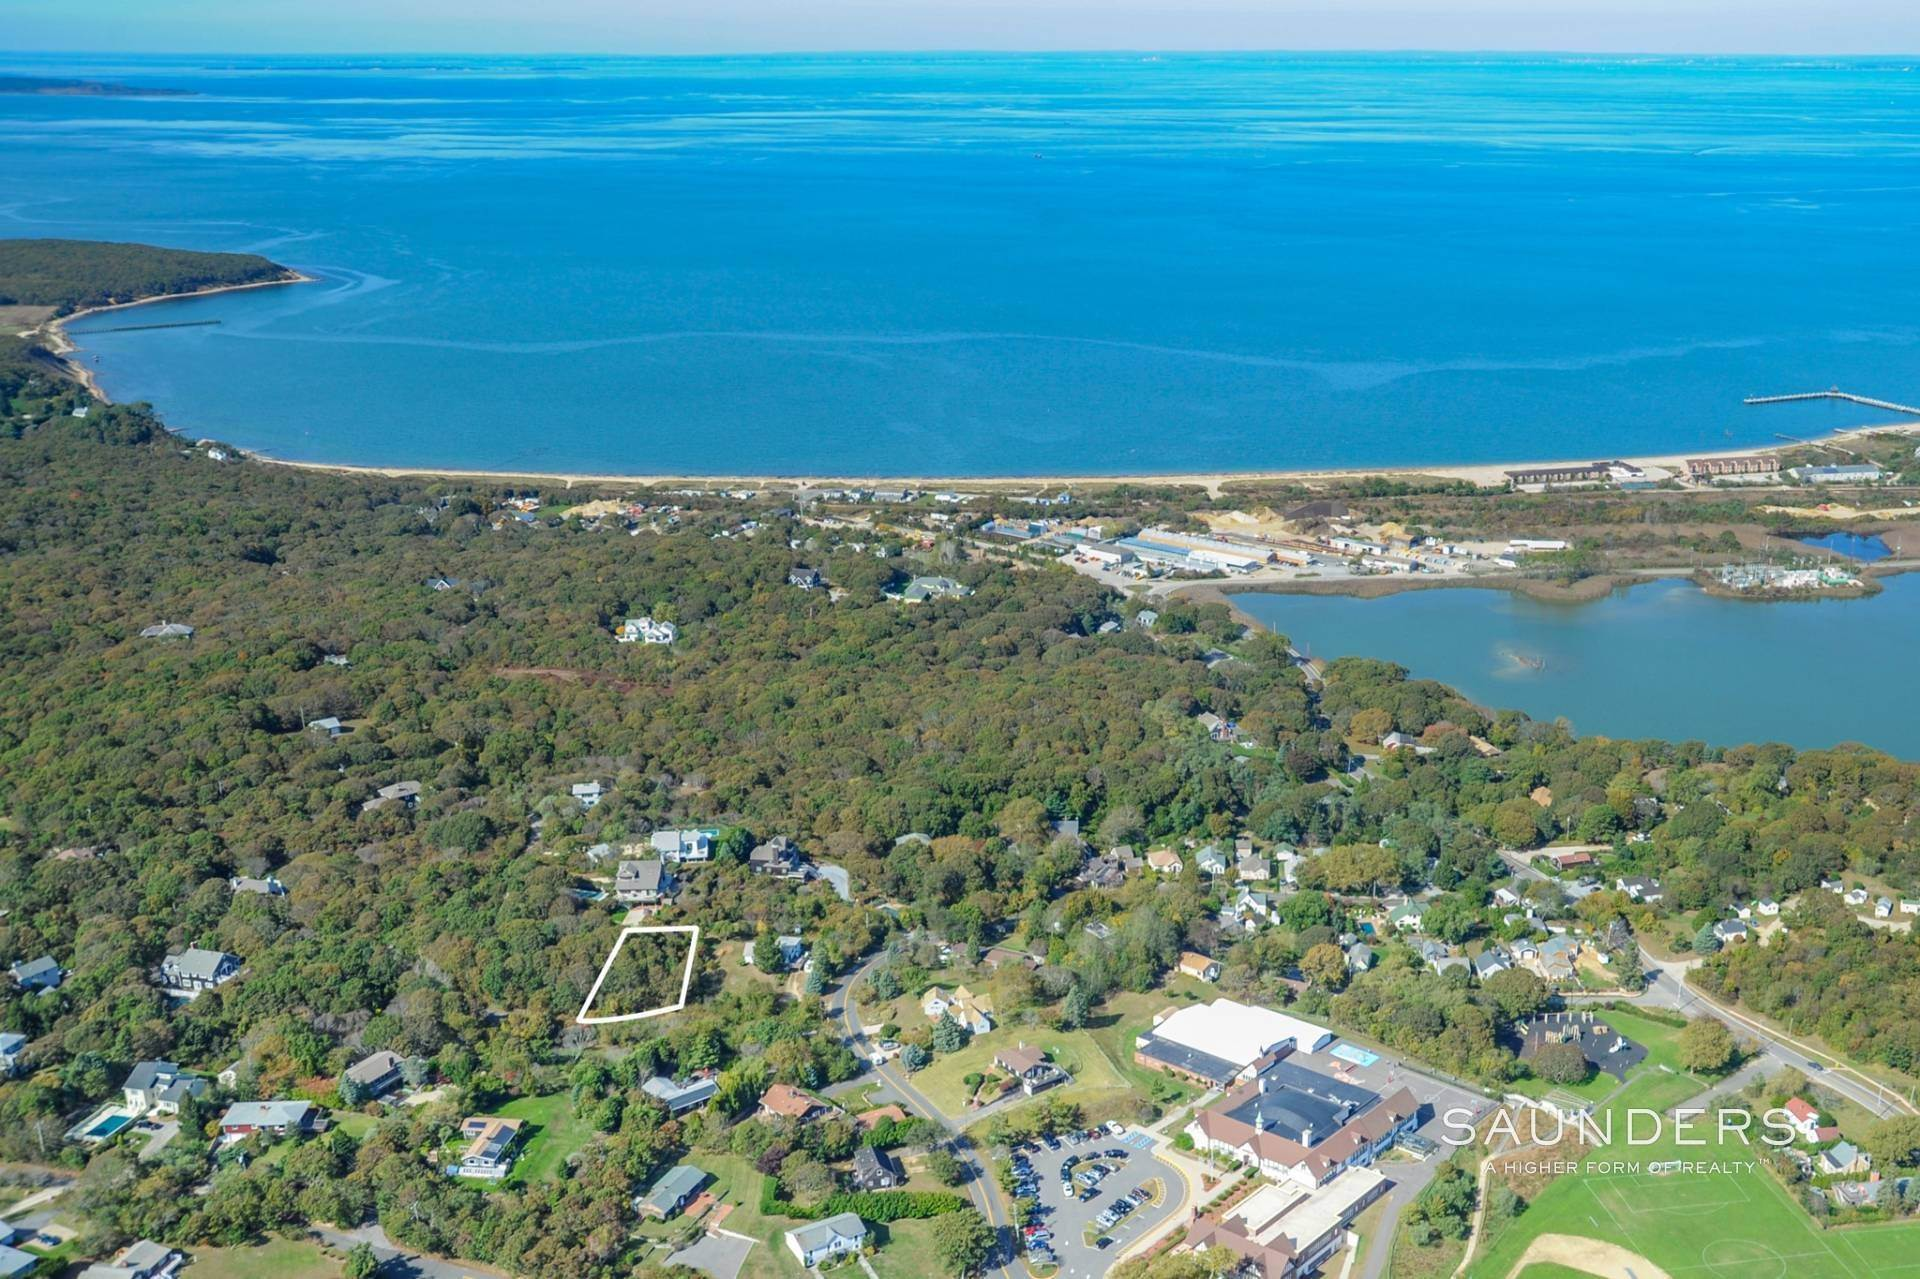 Land at Montauk Building Parcel 29 South Duncan Drive, Montauk, East Hampton Town, NY 11954